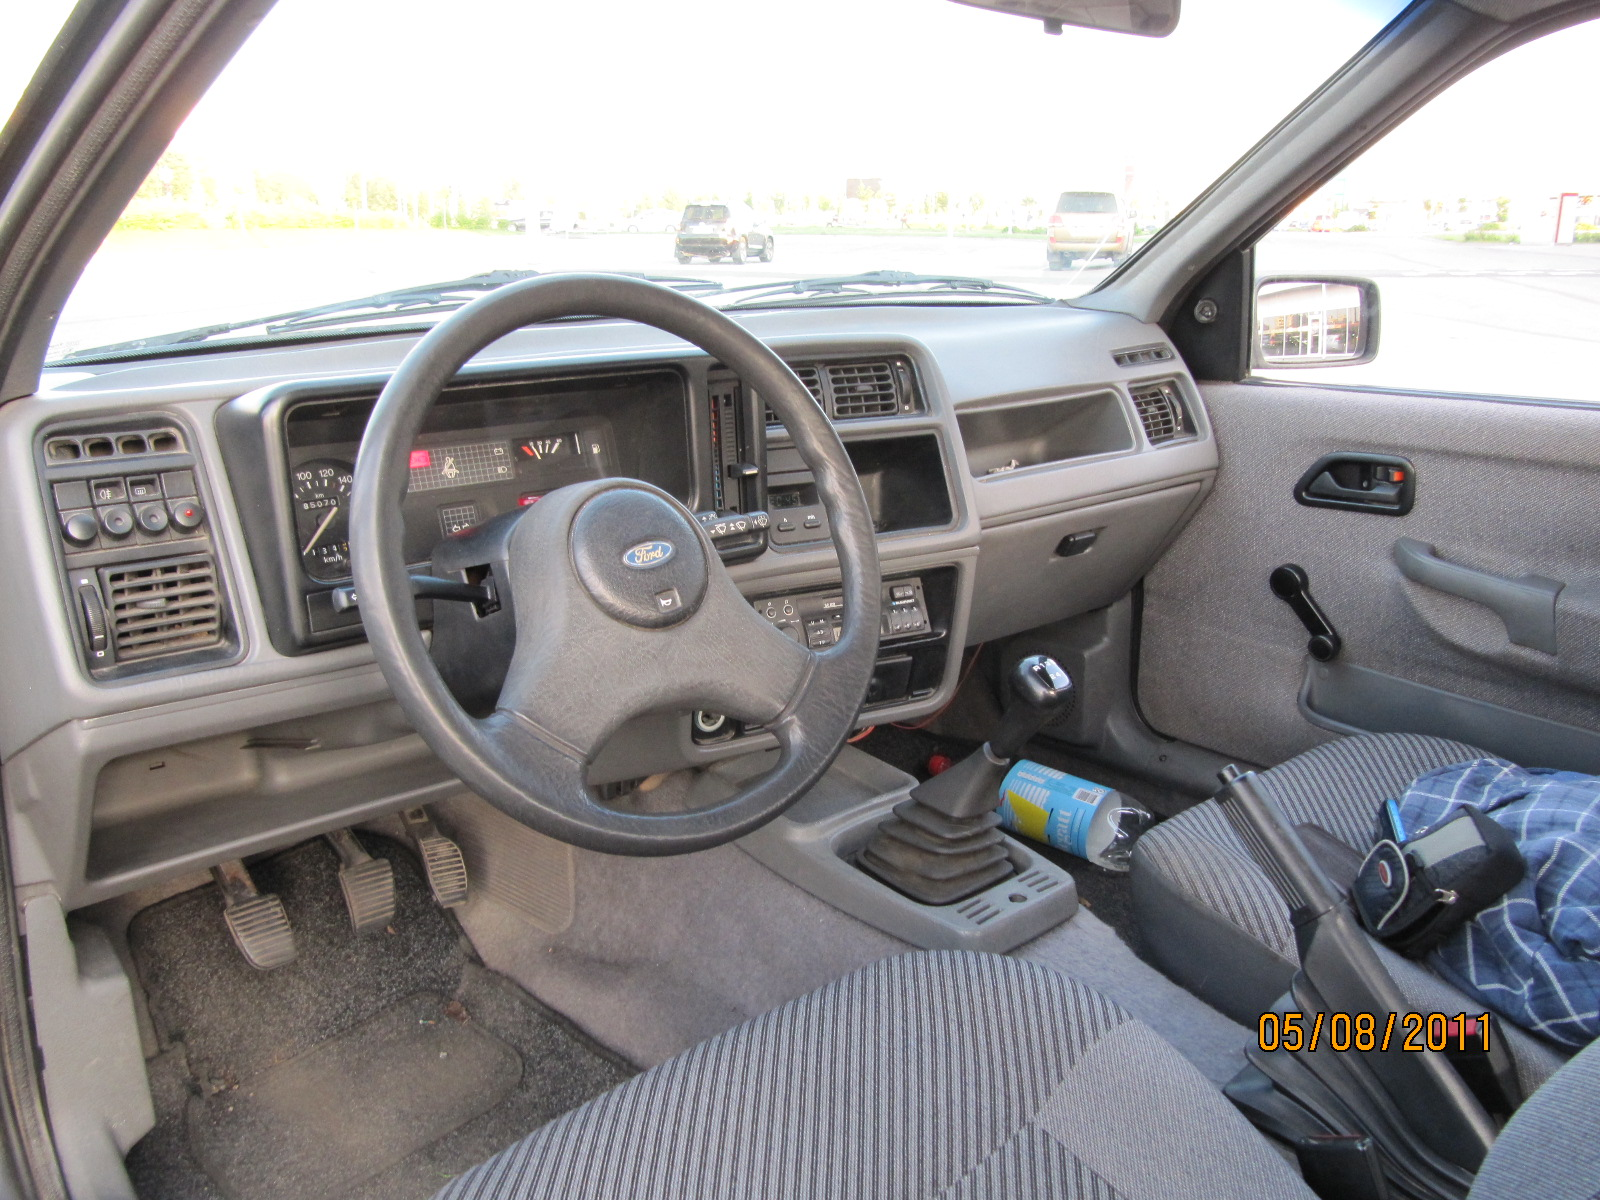 Ford Sierra Interior